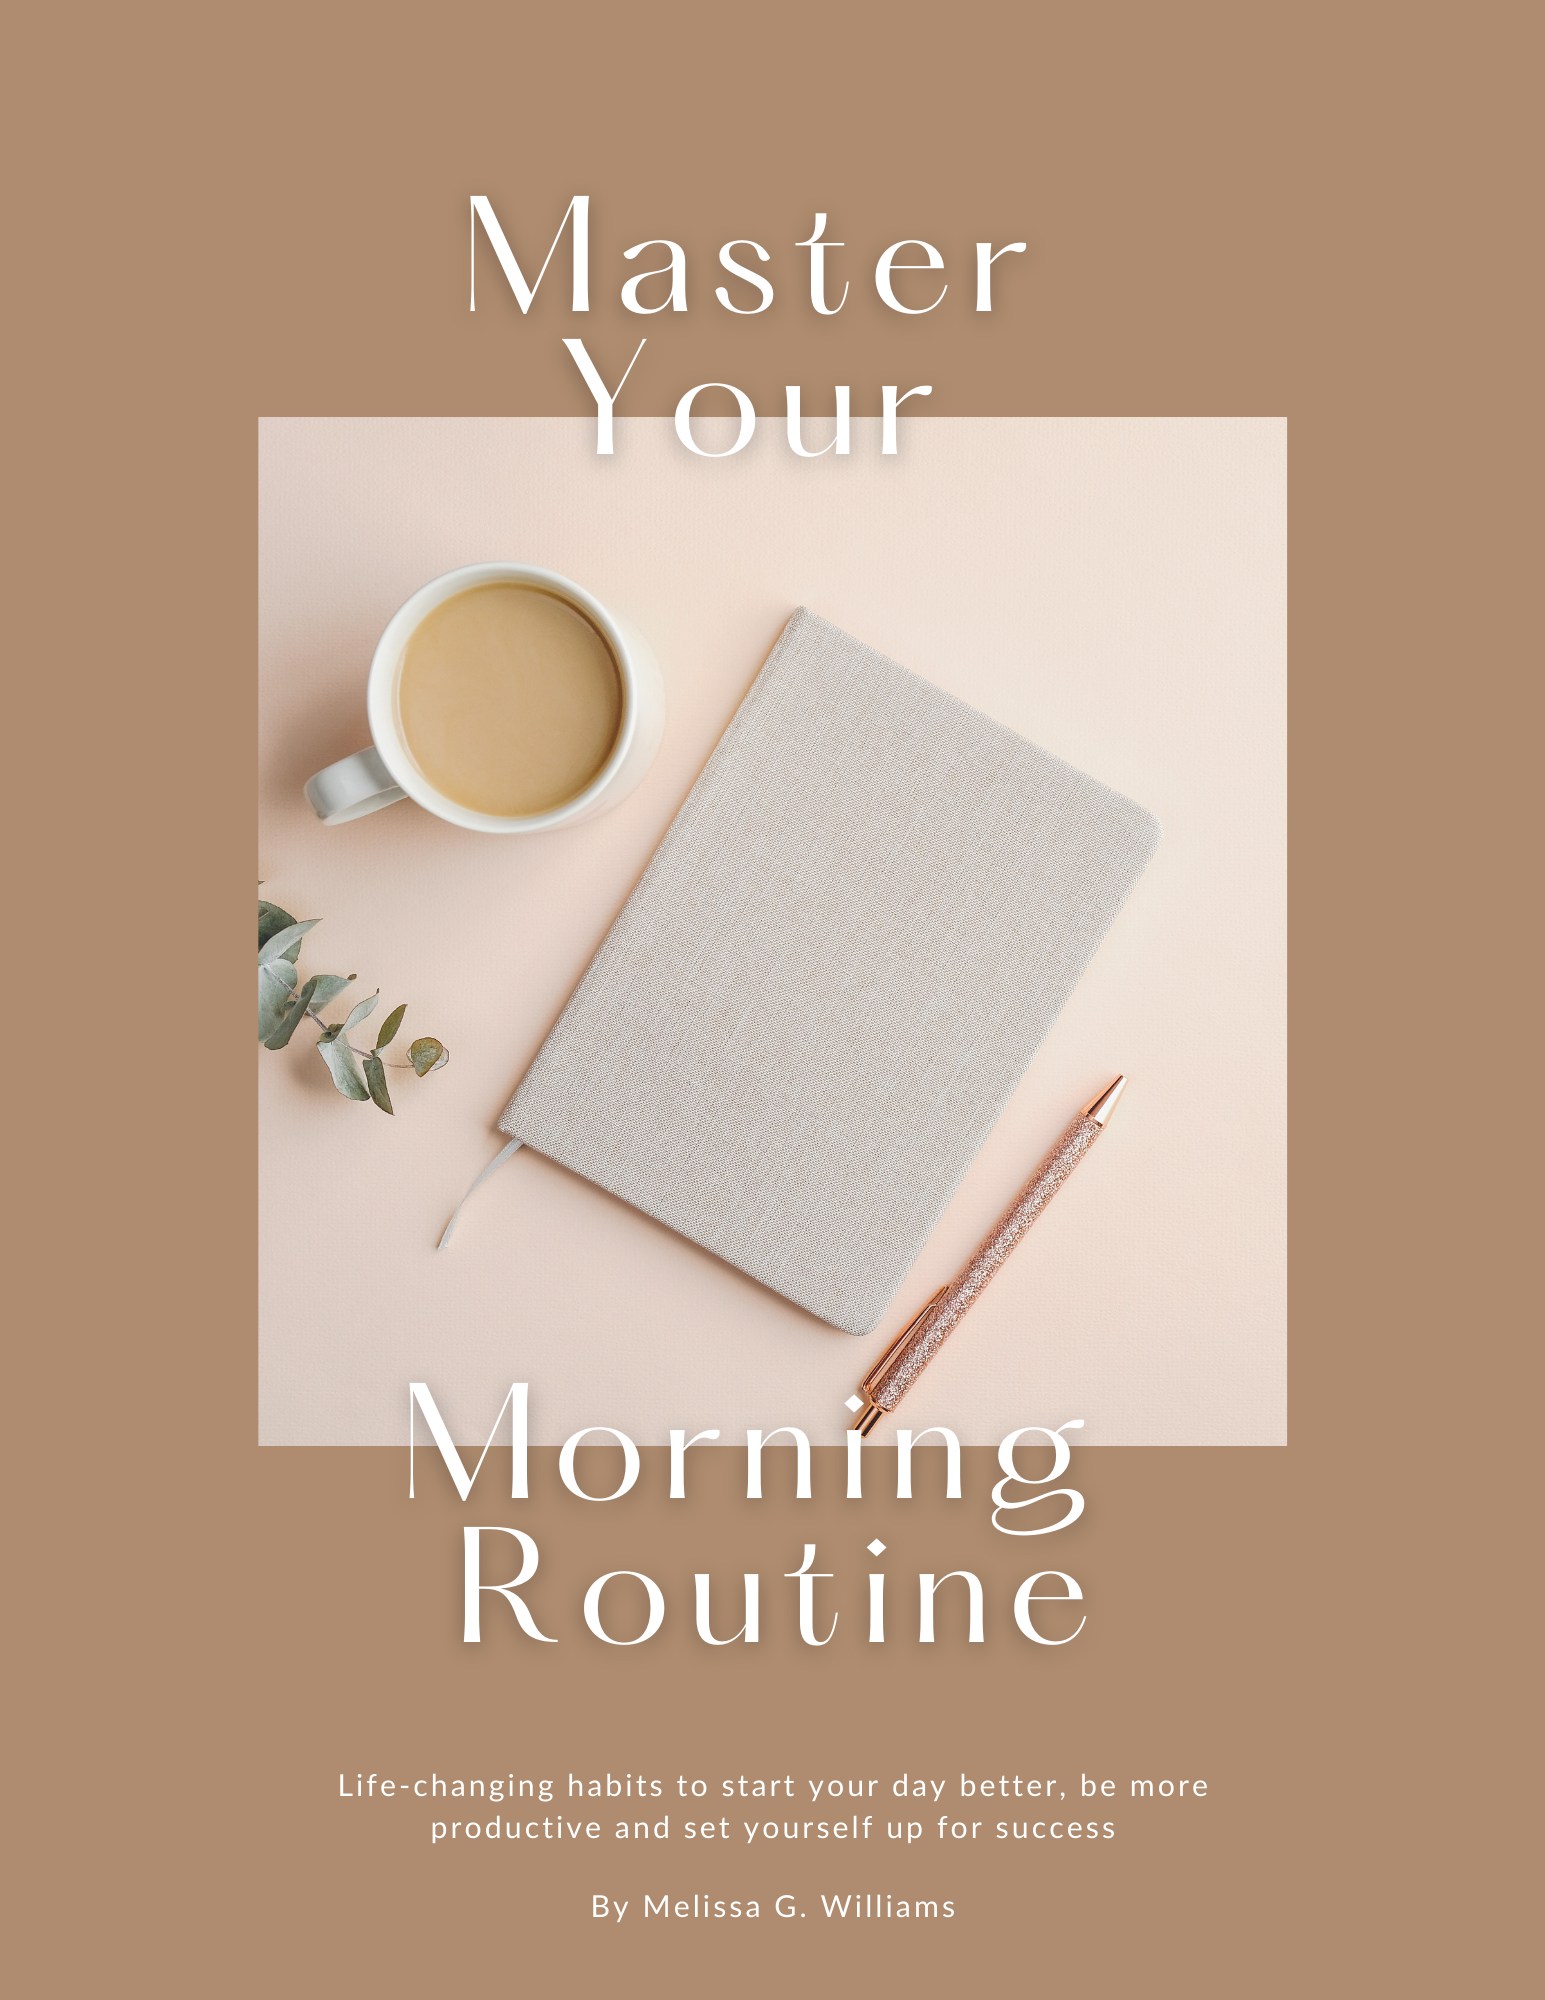 Master Your Morning Routine